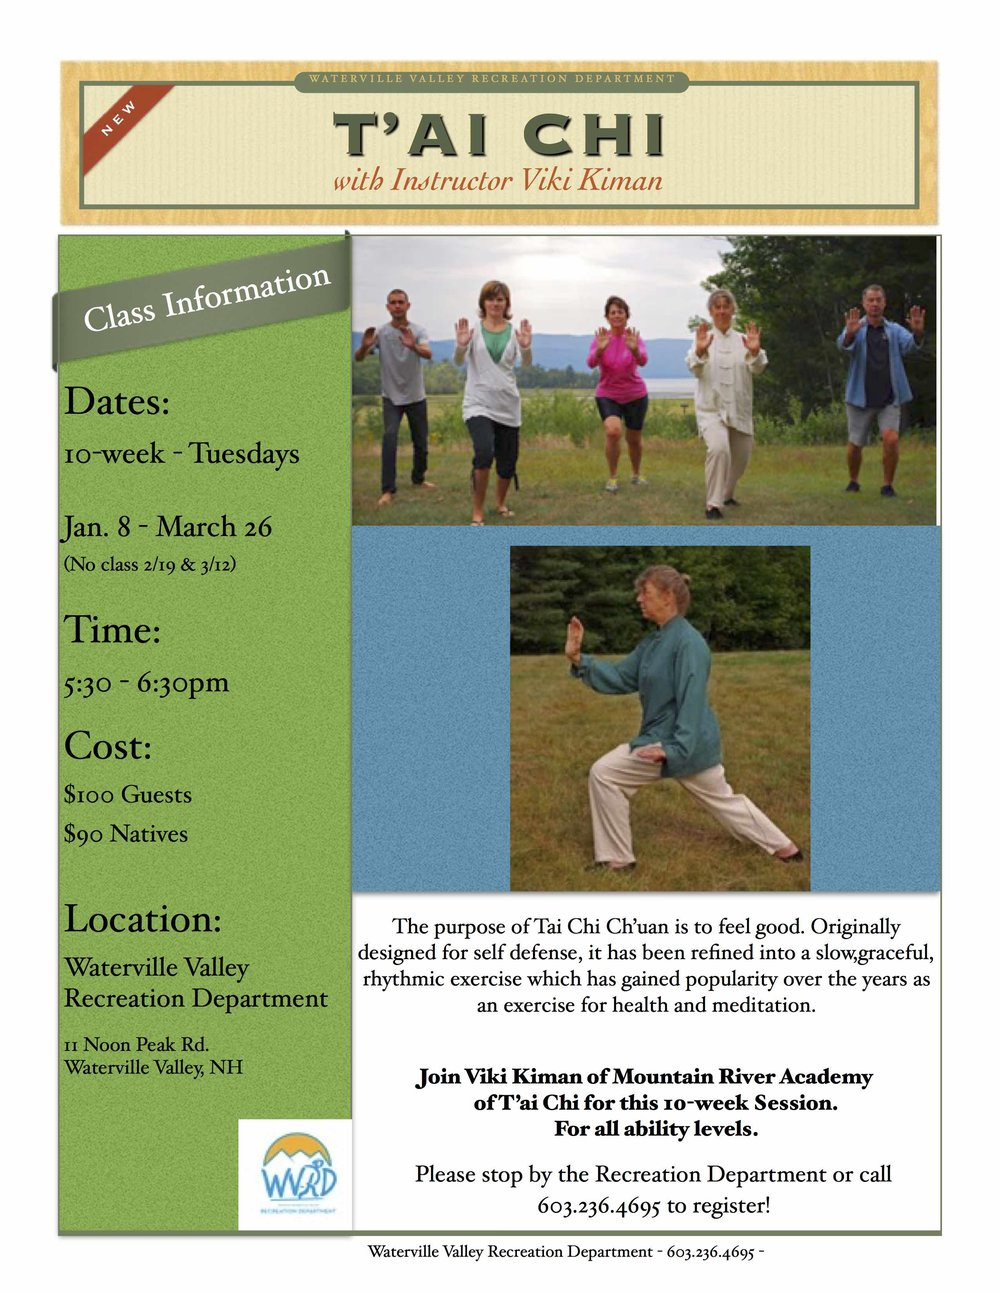 T'ai Chi is back at the WVRD! This class is designed for everyone! No special equipment or clothing needed. Class runs Tuesdays from Jan 8th - March 26th (No Class 2/19 + 3/12) from 5:30-6:30pm. Just sign up online, or call the Rec at (603) 236-4695.